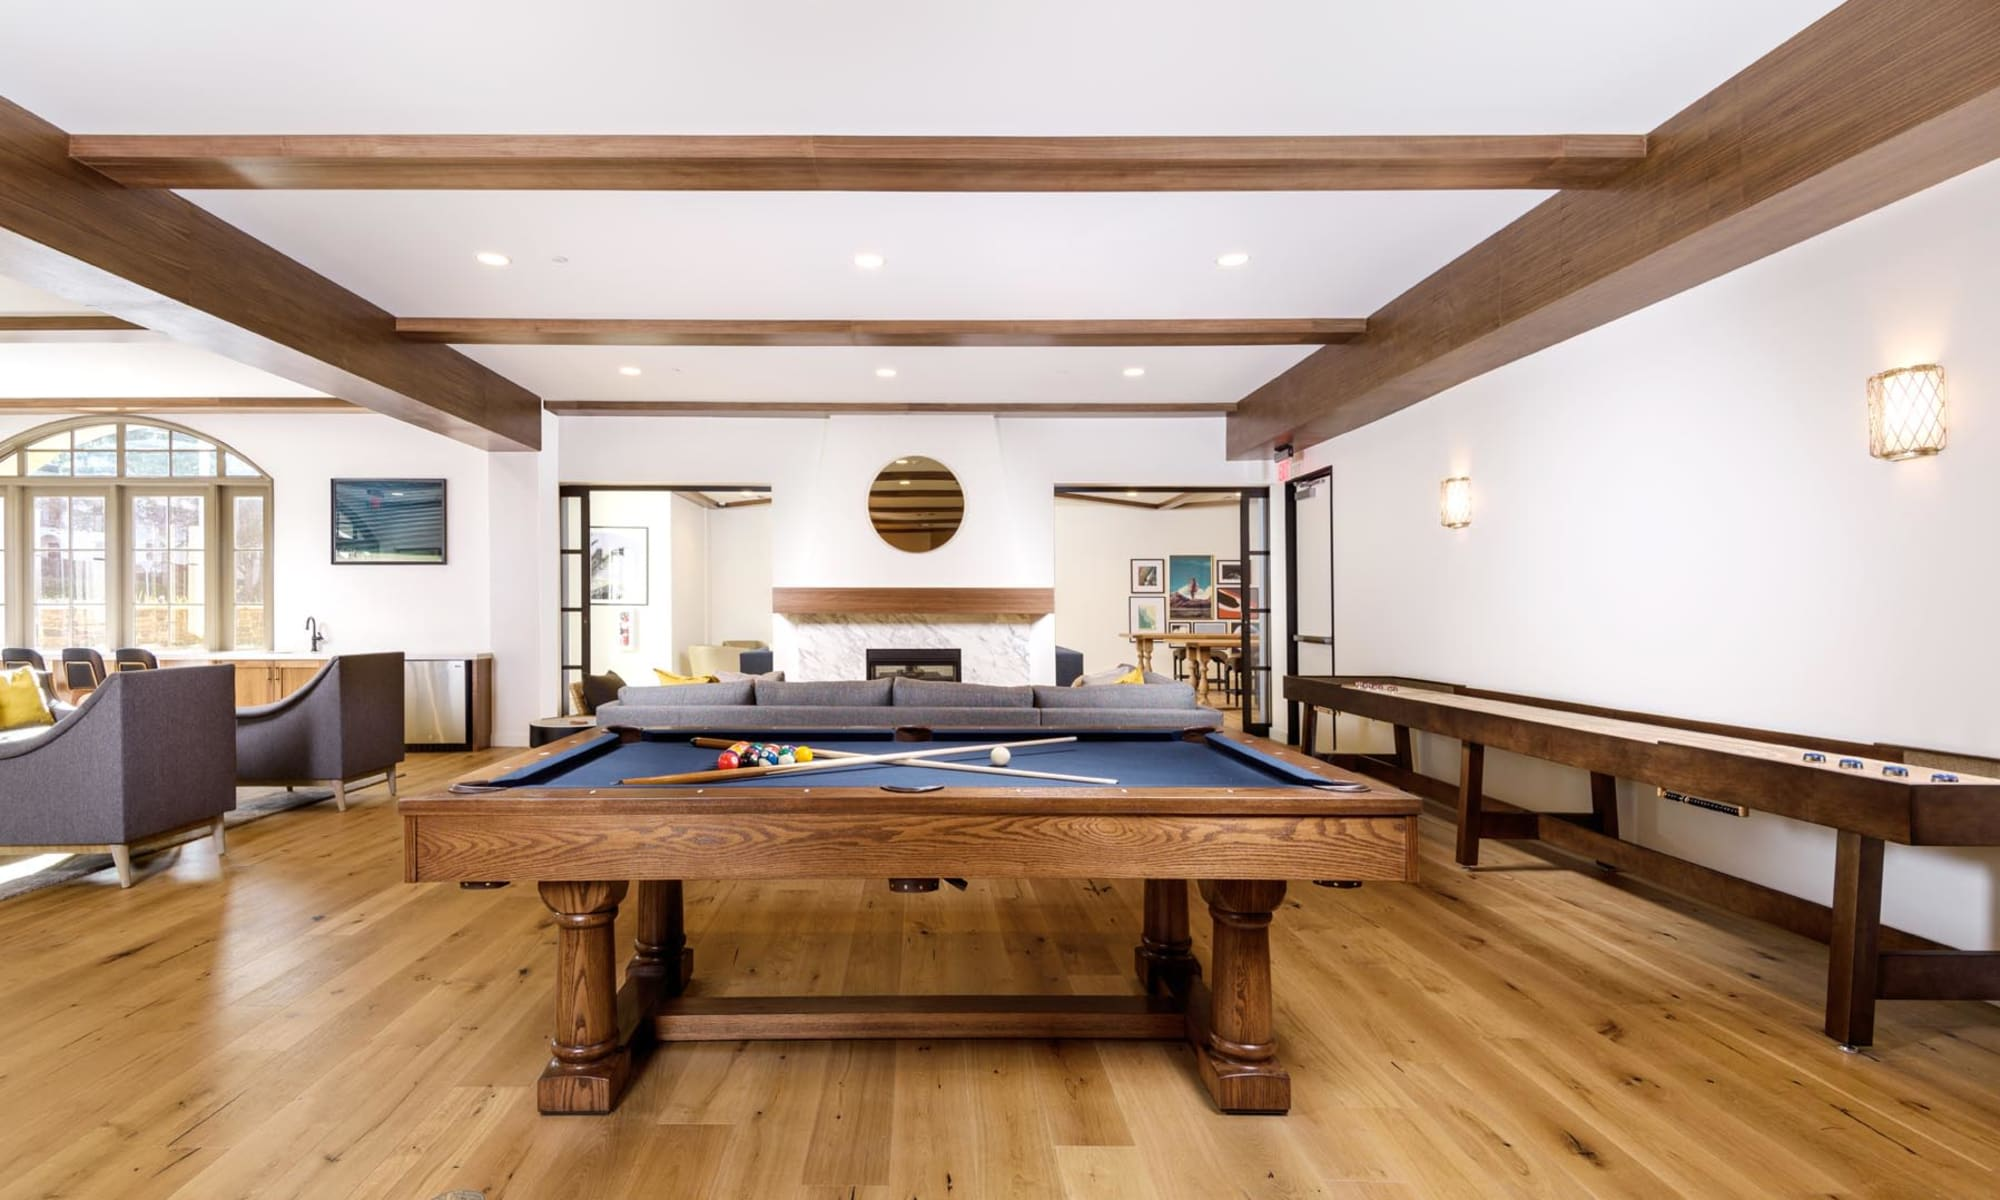 Billiards table in the game area of the clubhouse at Mission Hills in Camarillo, California